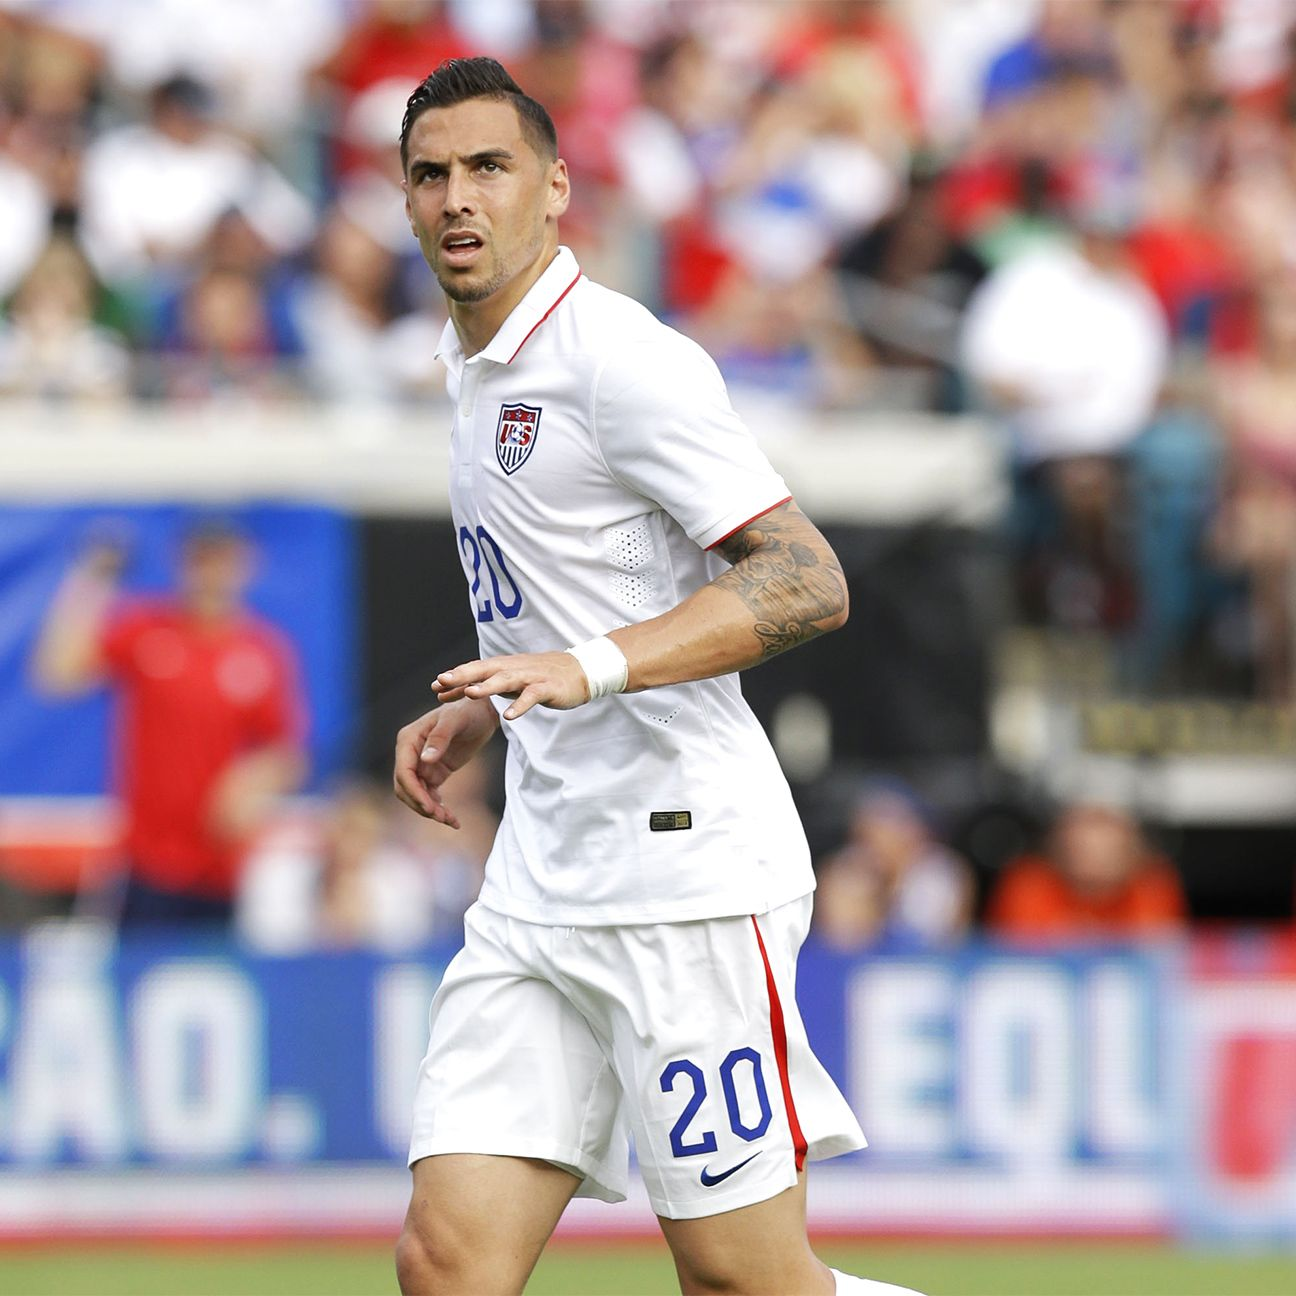 After missing the Gold Cup, Geoff Cameron is back for the U.S. in their preparation for October's playoff match versus Mexico.